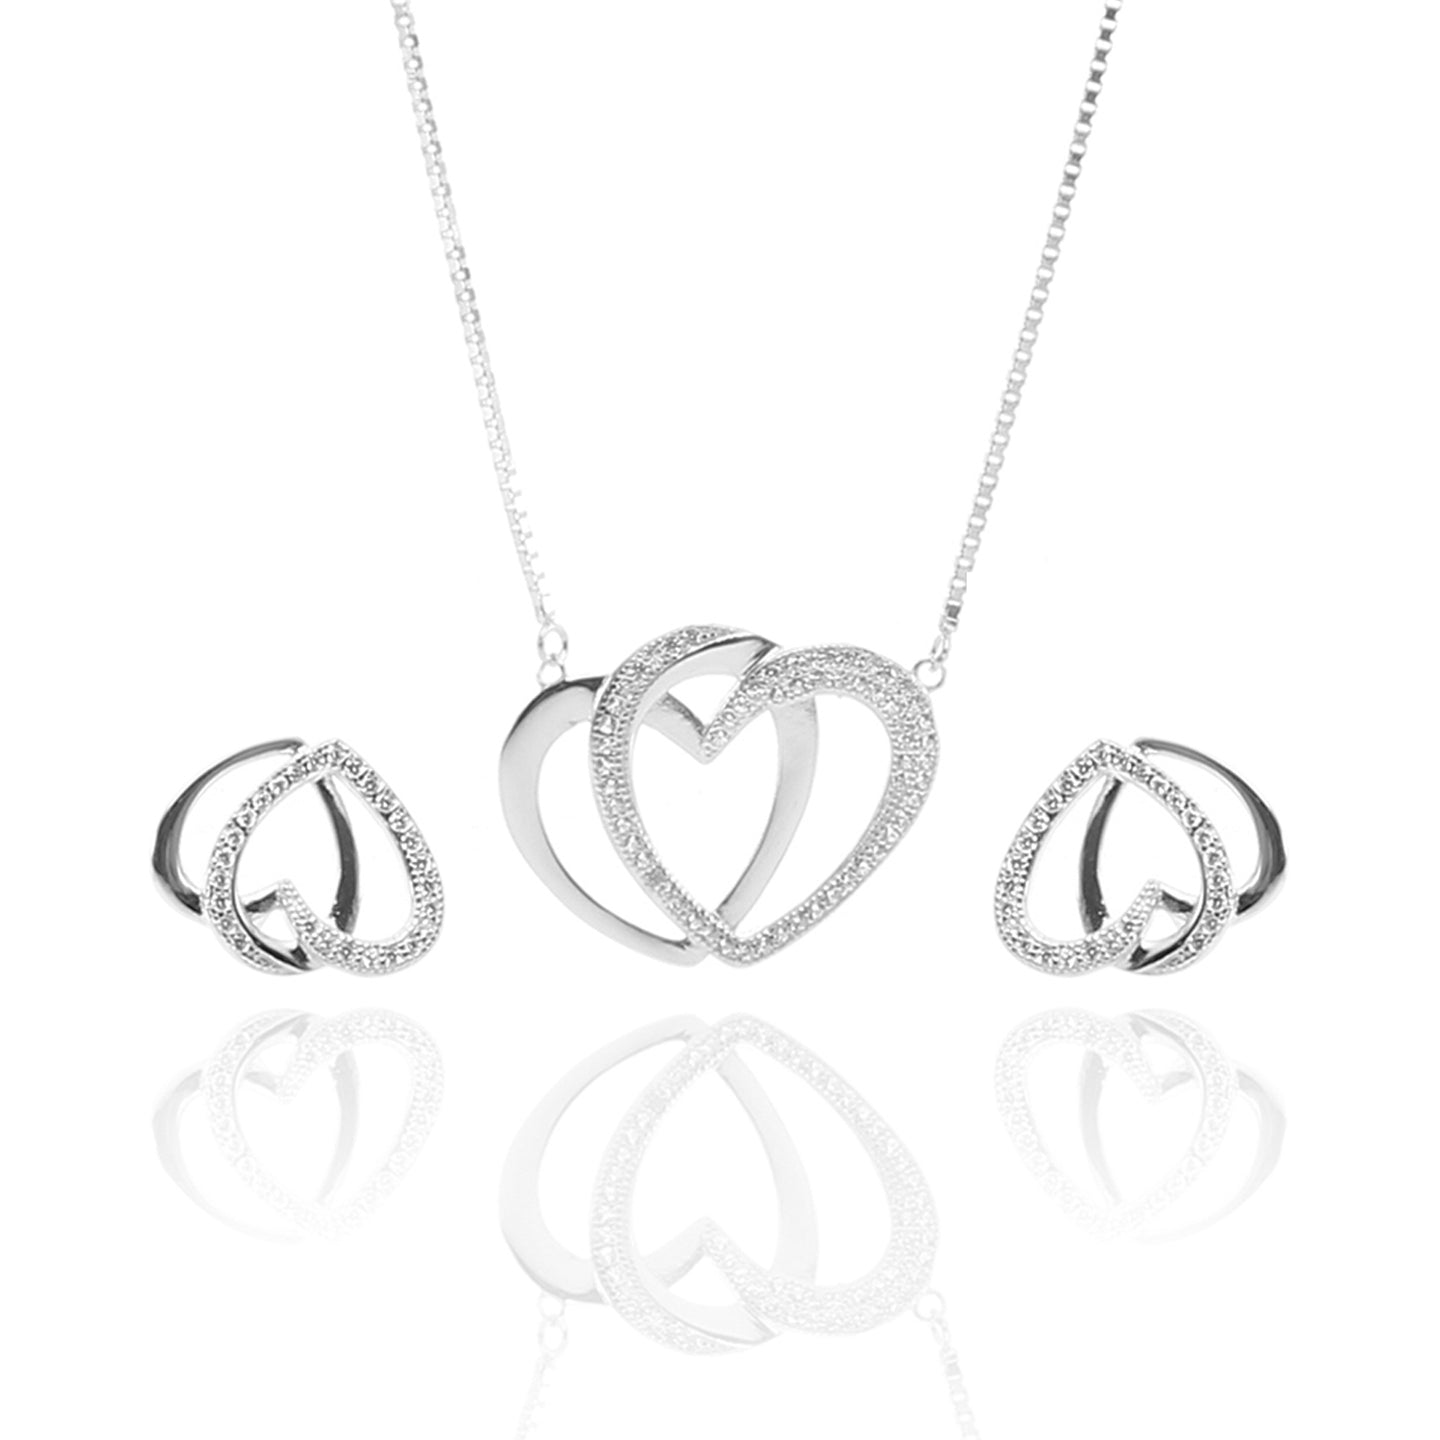 Interlocking Hearts Pendant Necklace and Earrings Set - ARJW1025RD